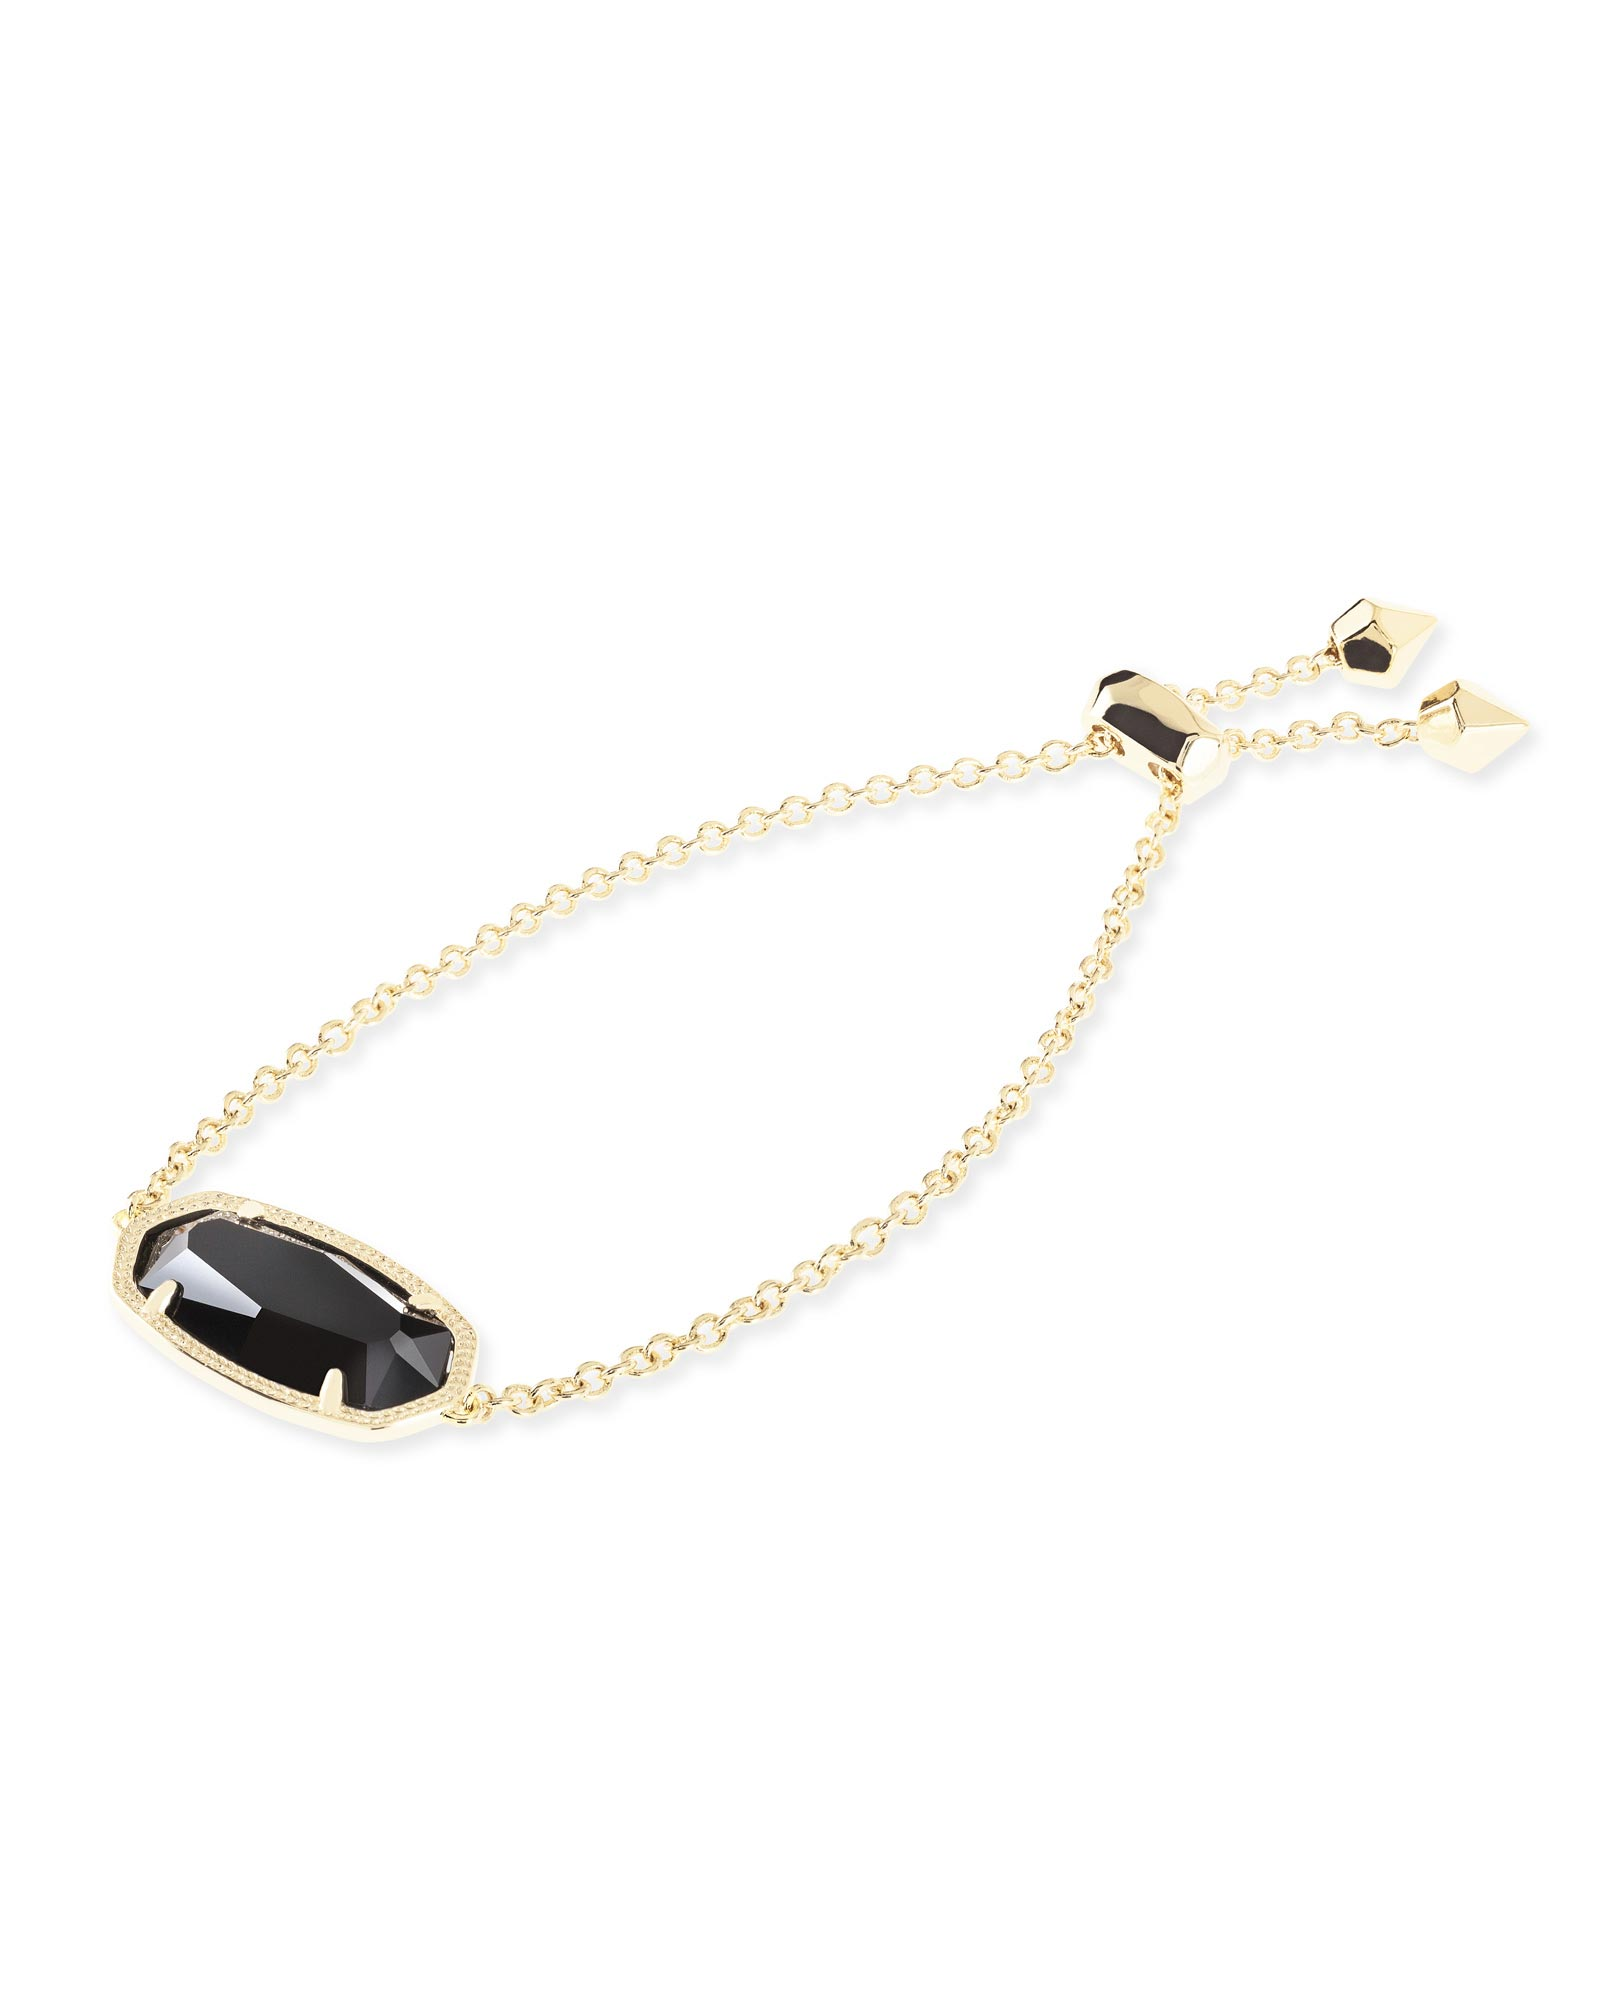 Daisy Gold Adjustable Chain Bracelet in Black